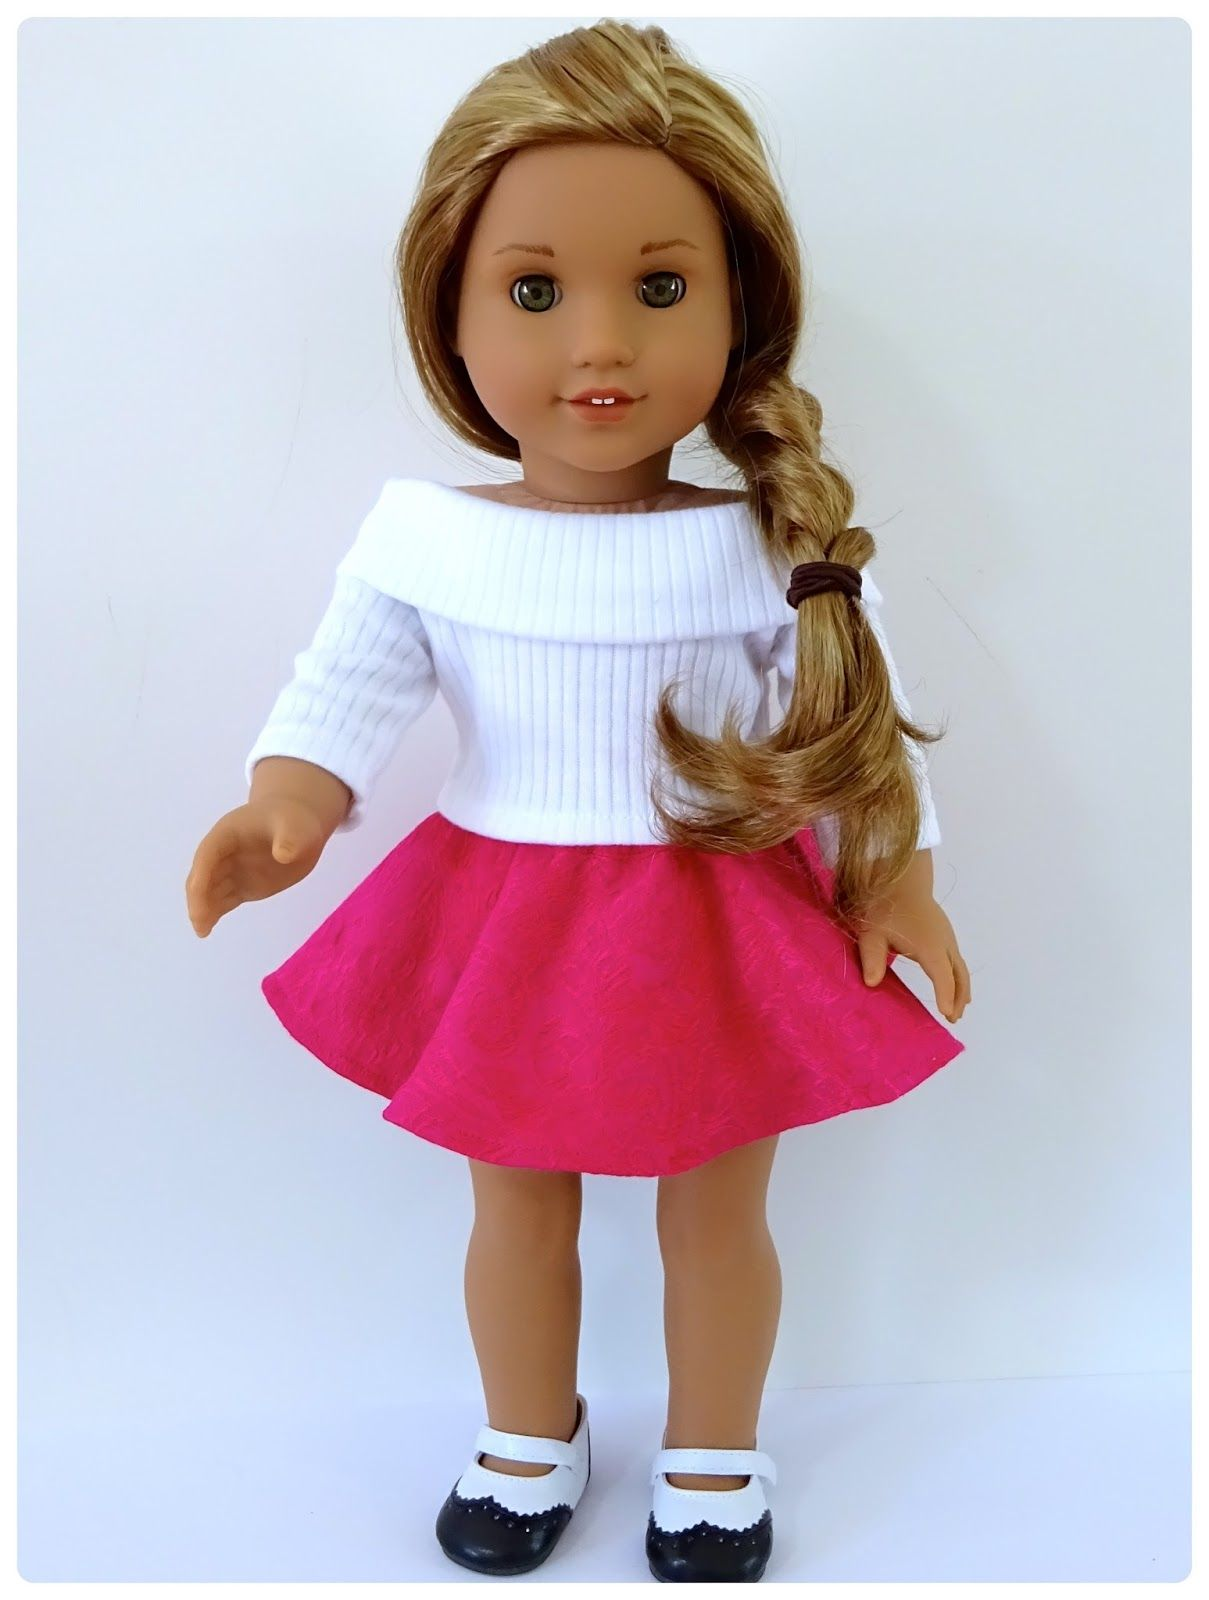 Girl American doll dress patterns pictures photos